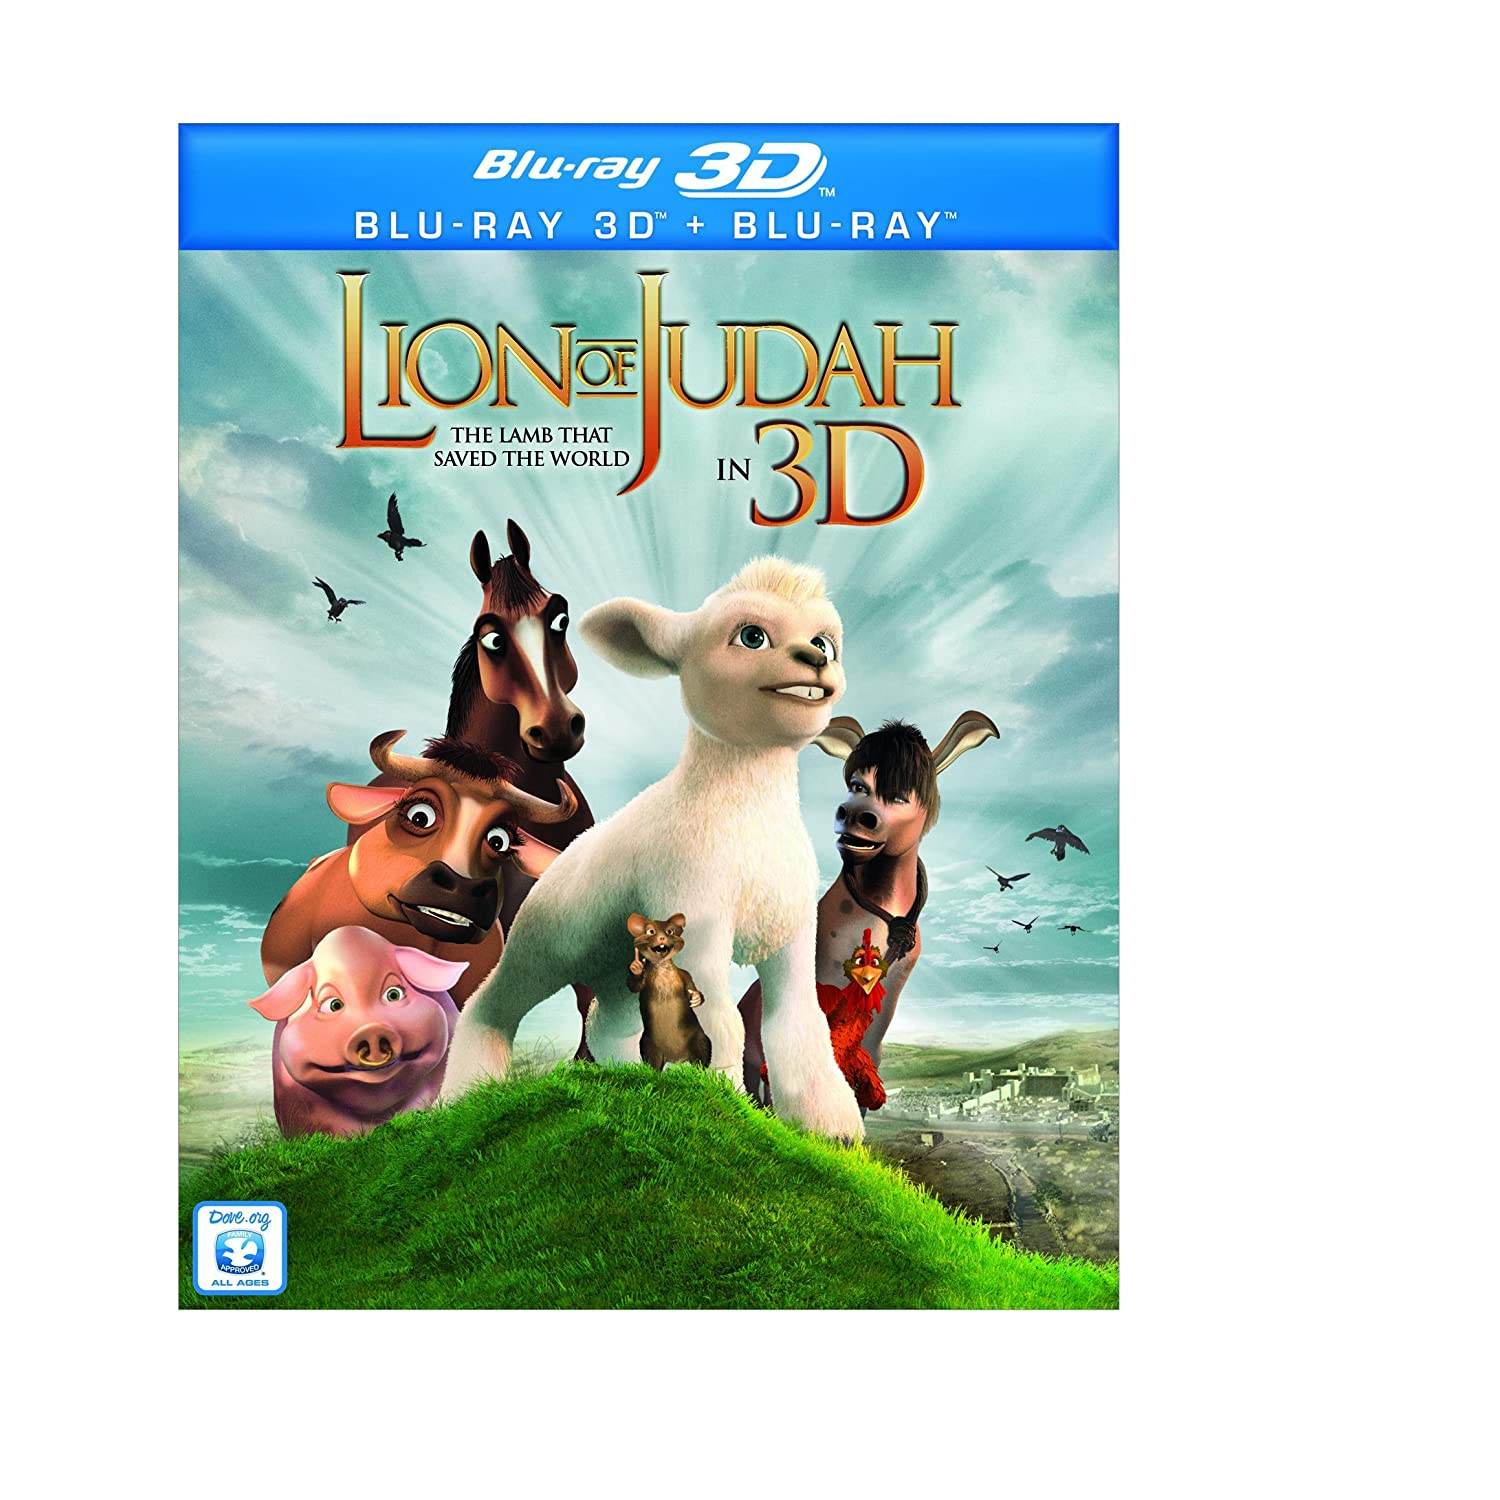 Thread: Lion Of Judah (Blu-ray 3D) First Christian 3-D film released ...